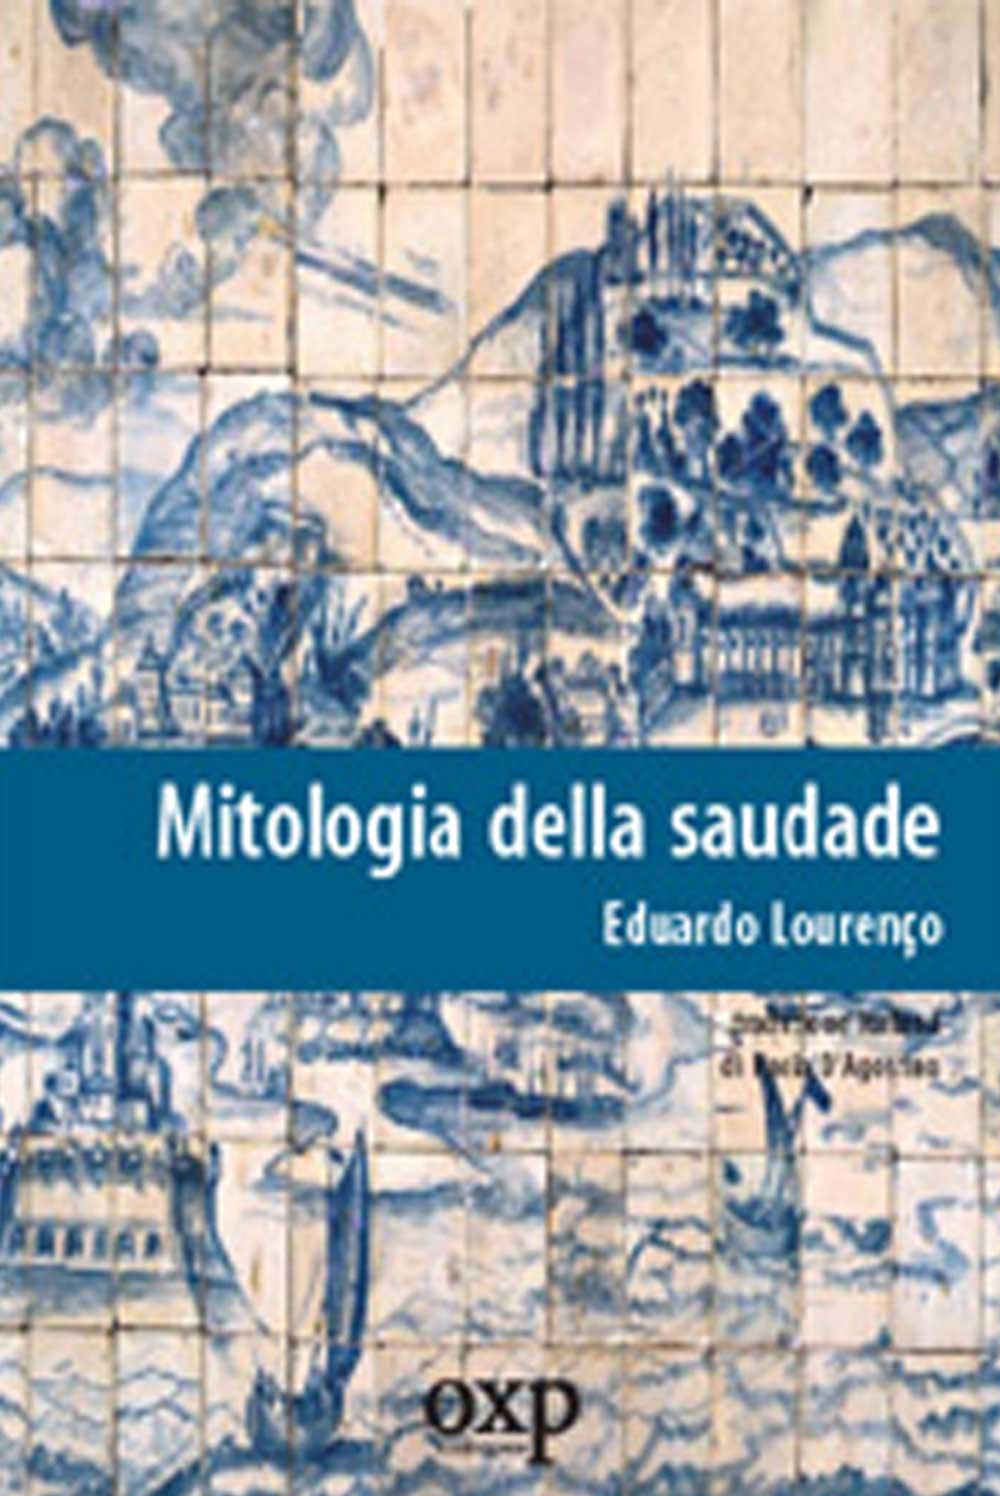 https://www.amazon.it/Mitologia-della-saudade-Eduardo-Louren%C3%A7o/dp/8895007069